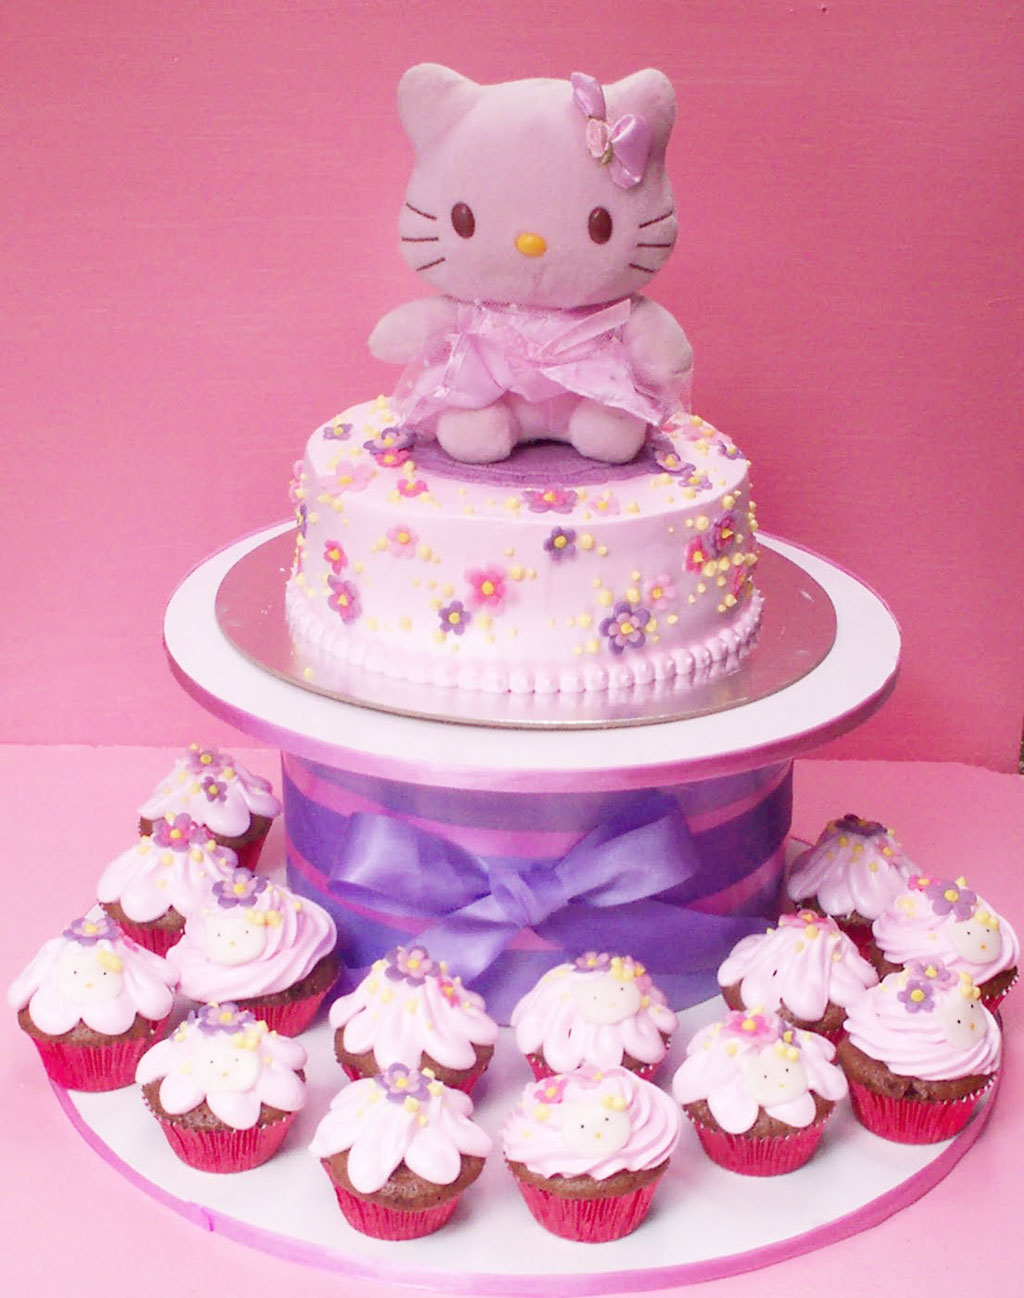 Simple Hello Kitty Birthday Cake Image Inspiration of Cake and